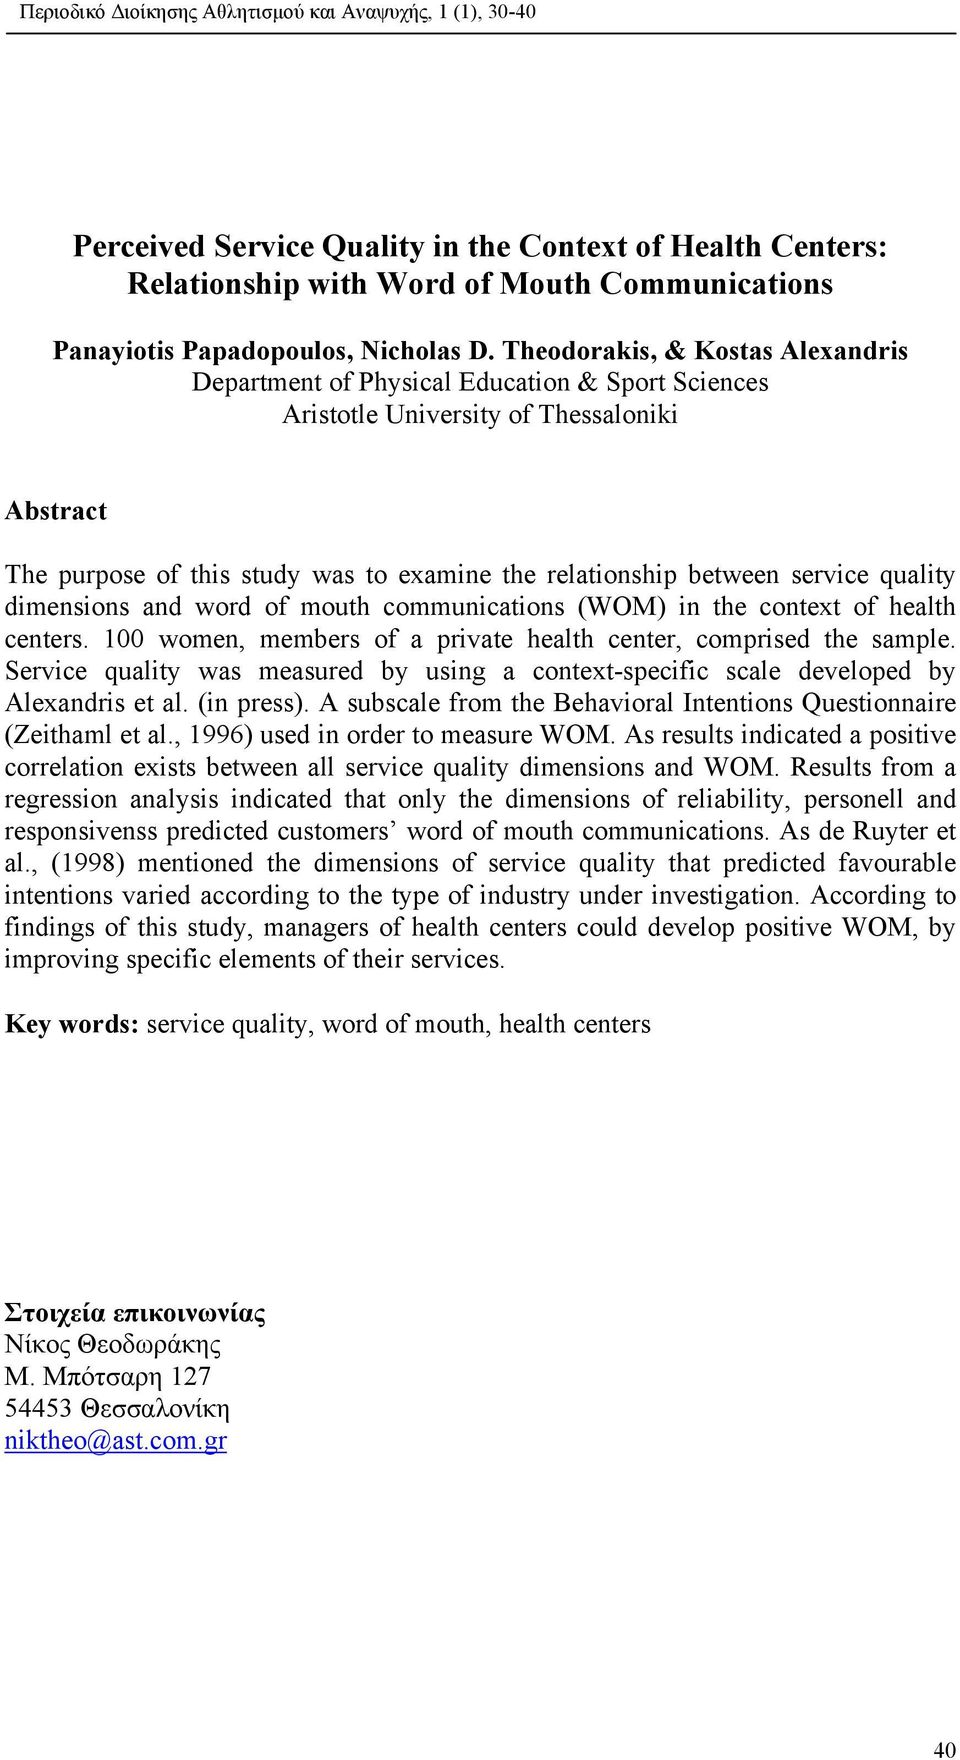 service quality dimensions and word of mouth communications (WOM) in the context of health centers. 100 women, members of a private health center, comprised the sample.